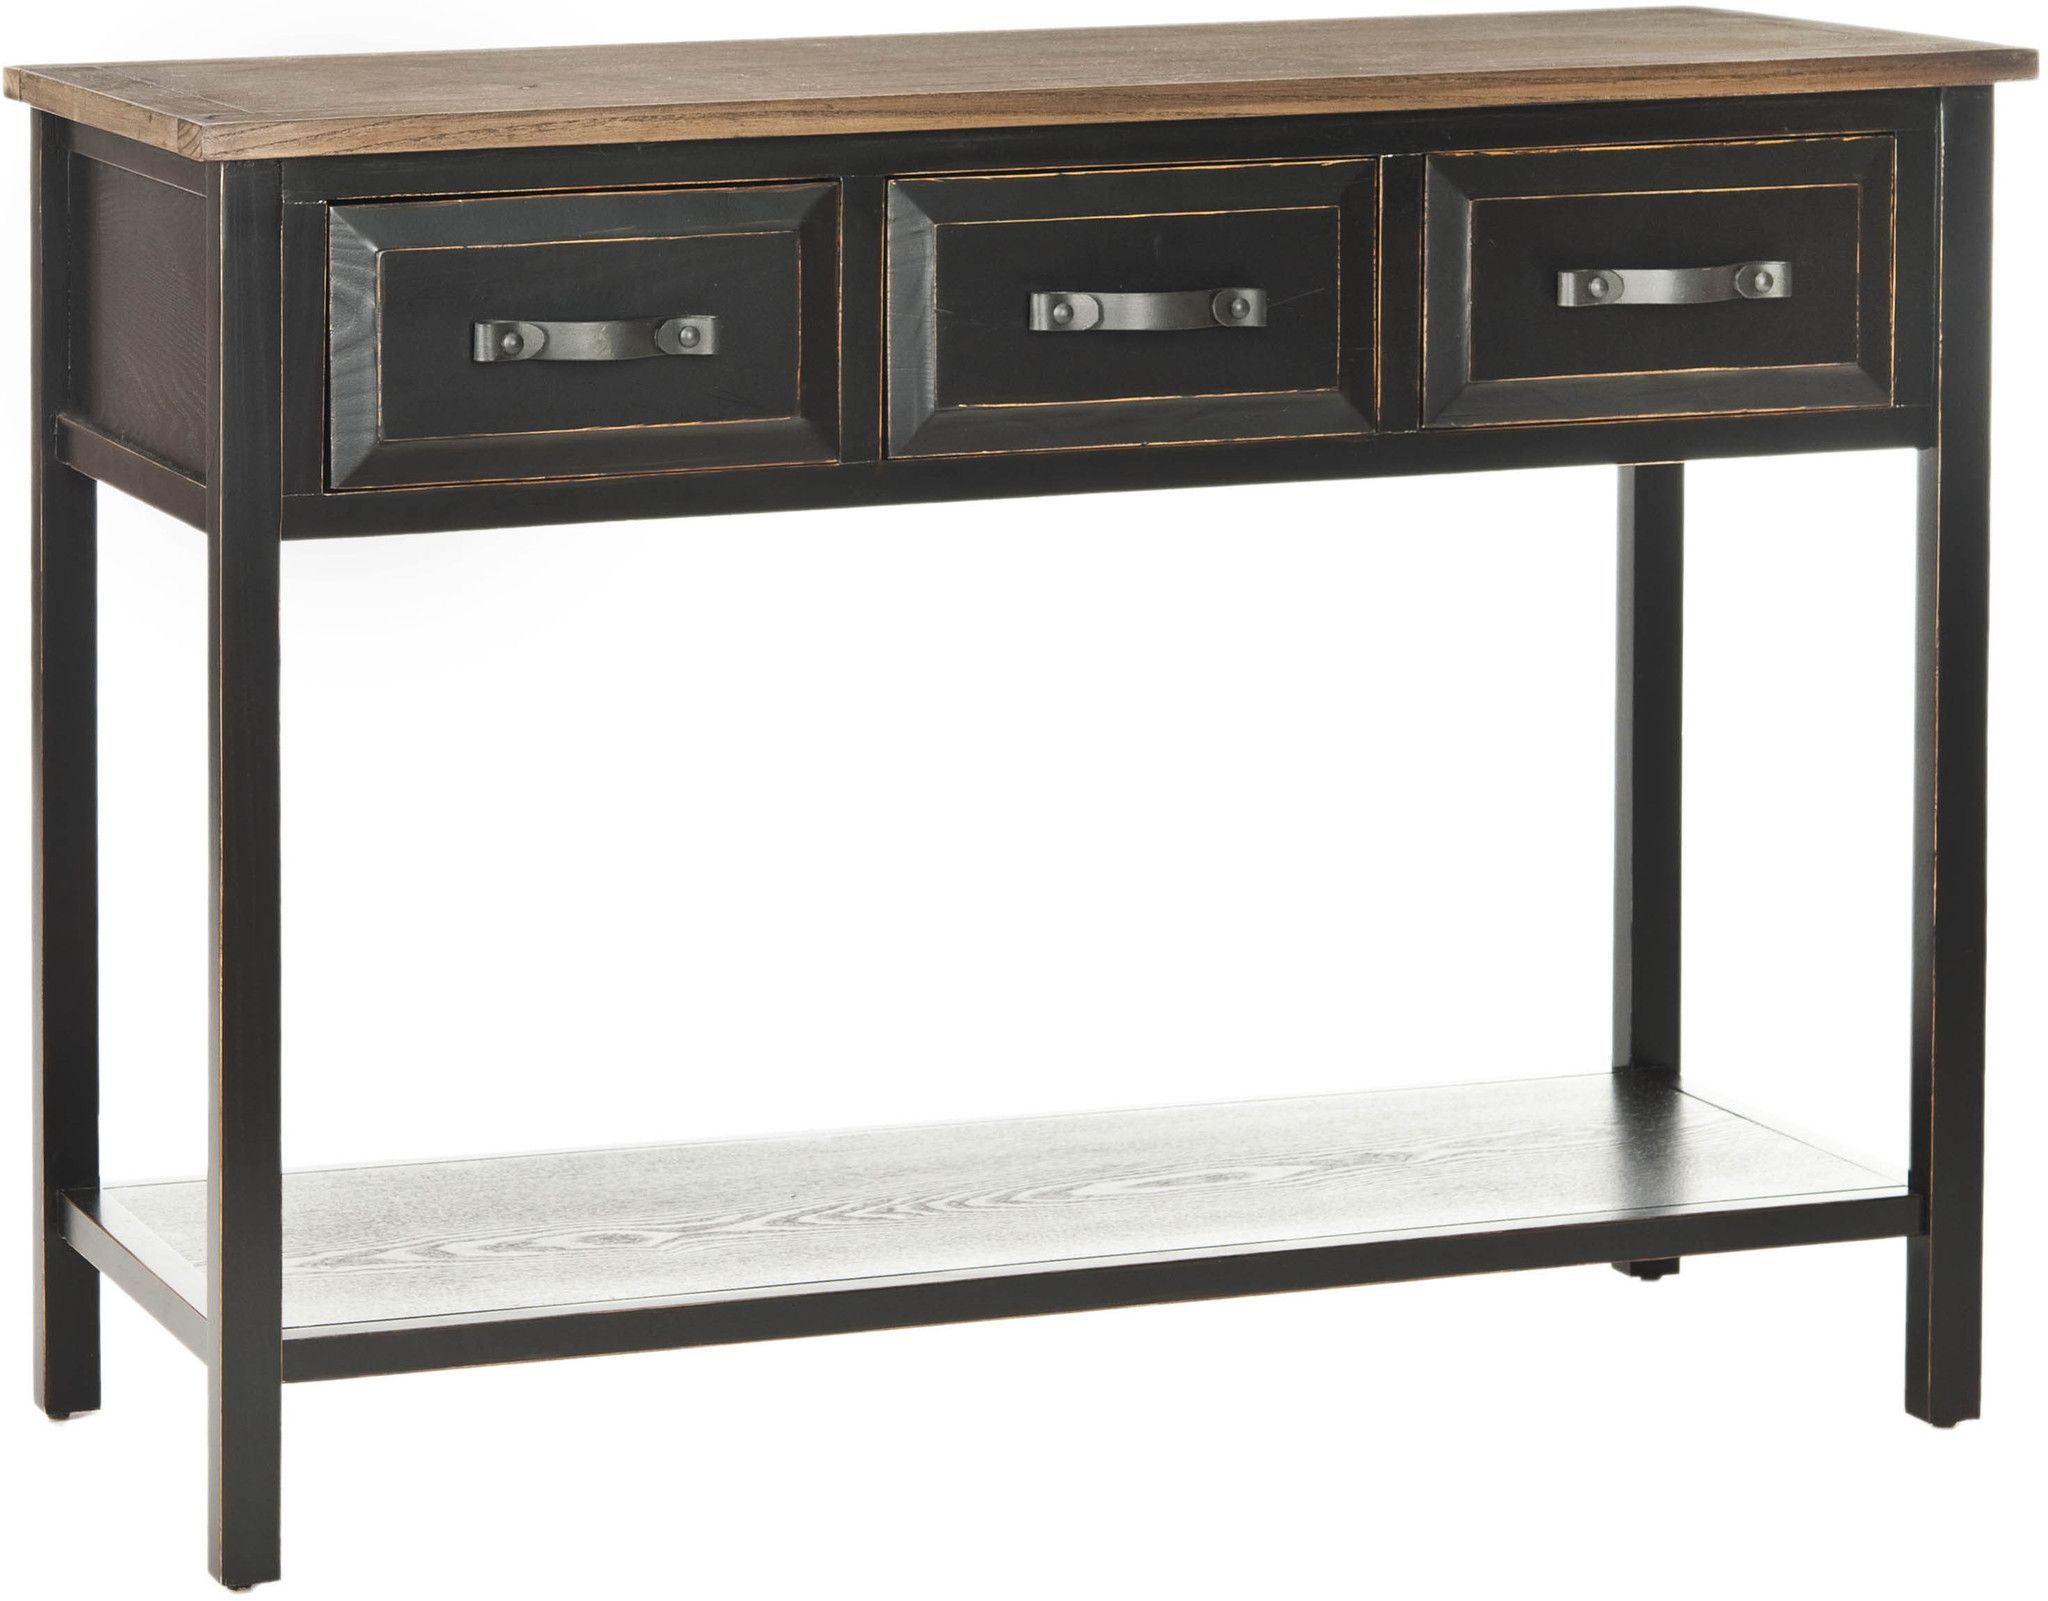 Aiden console table black oak products pinterest console safavieh harvard console table in distressed black and walnut geotapseo Gallery